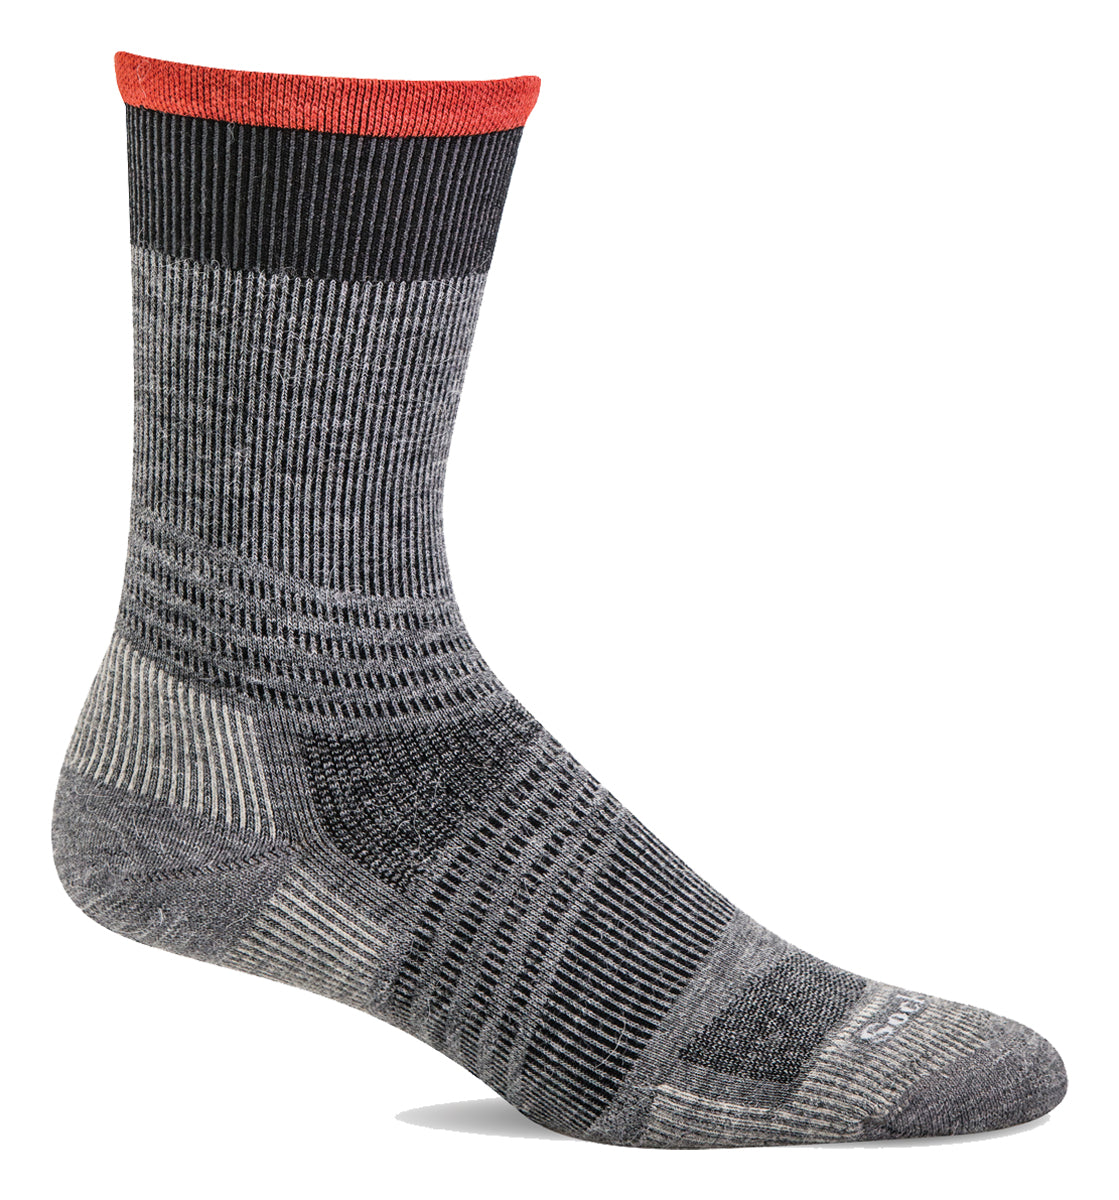 Men's Sockwell Summit Crew II Firm Graduated Compression Sock in Grey from the front view